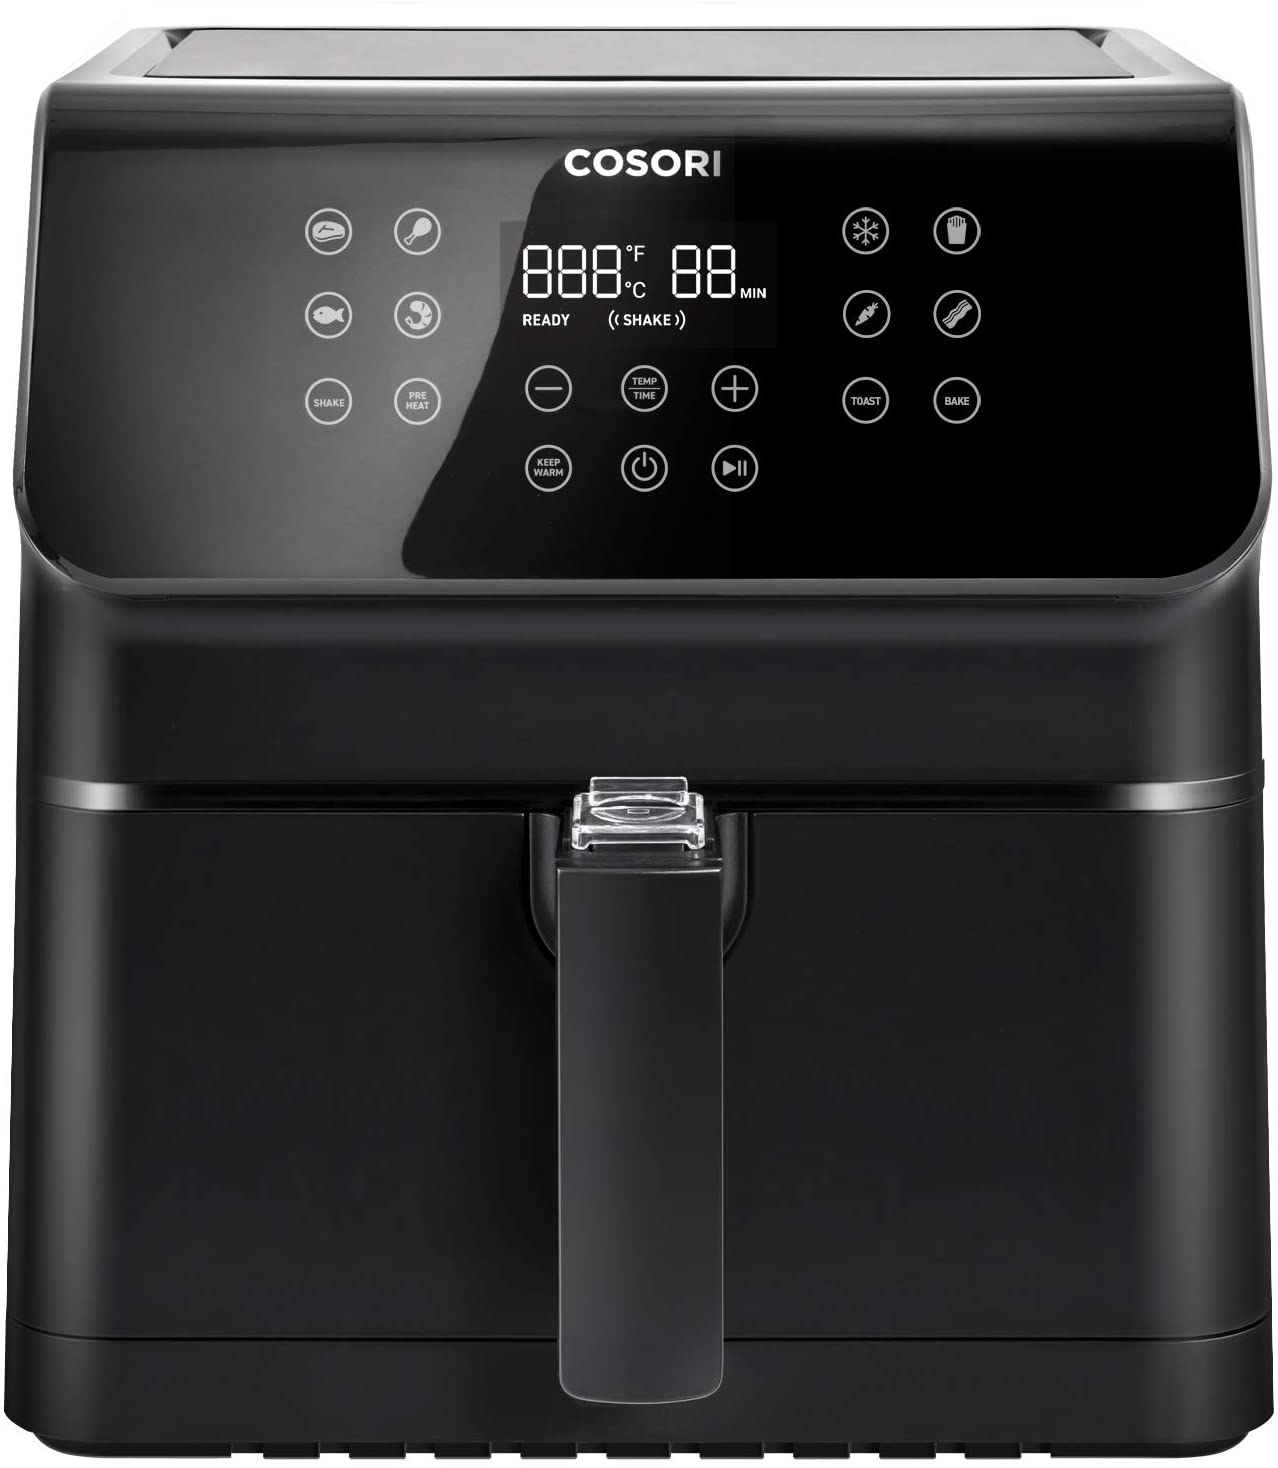 COSORI Air Fryer, Large XL 5.8 Quart 1700-Watt Air Fryer Oven & Oilless Cooker with Cookbook(100 Recipes)